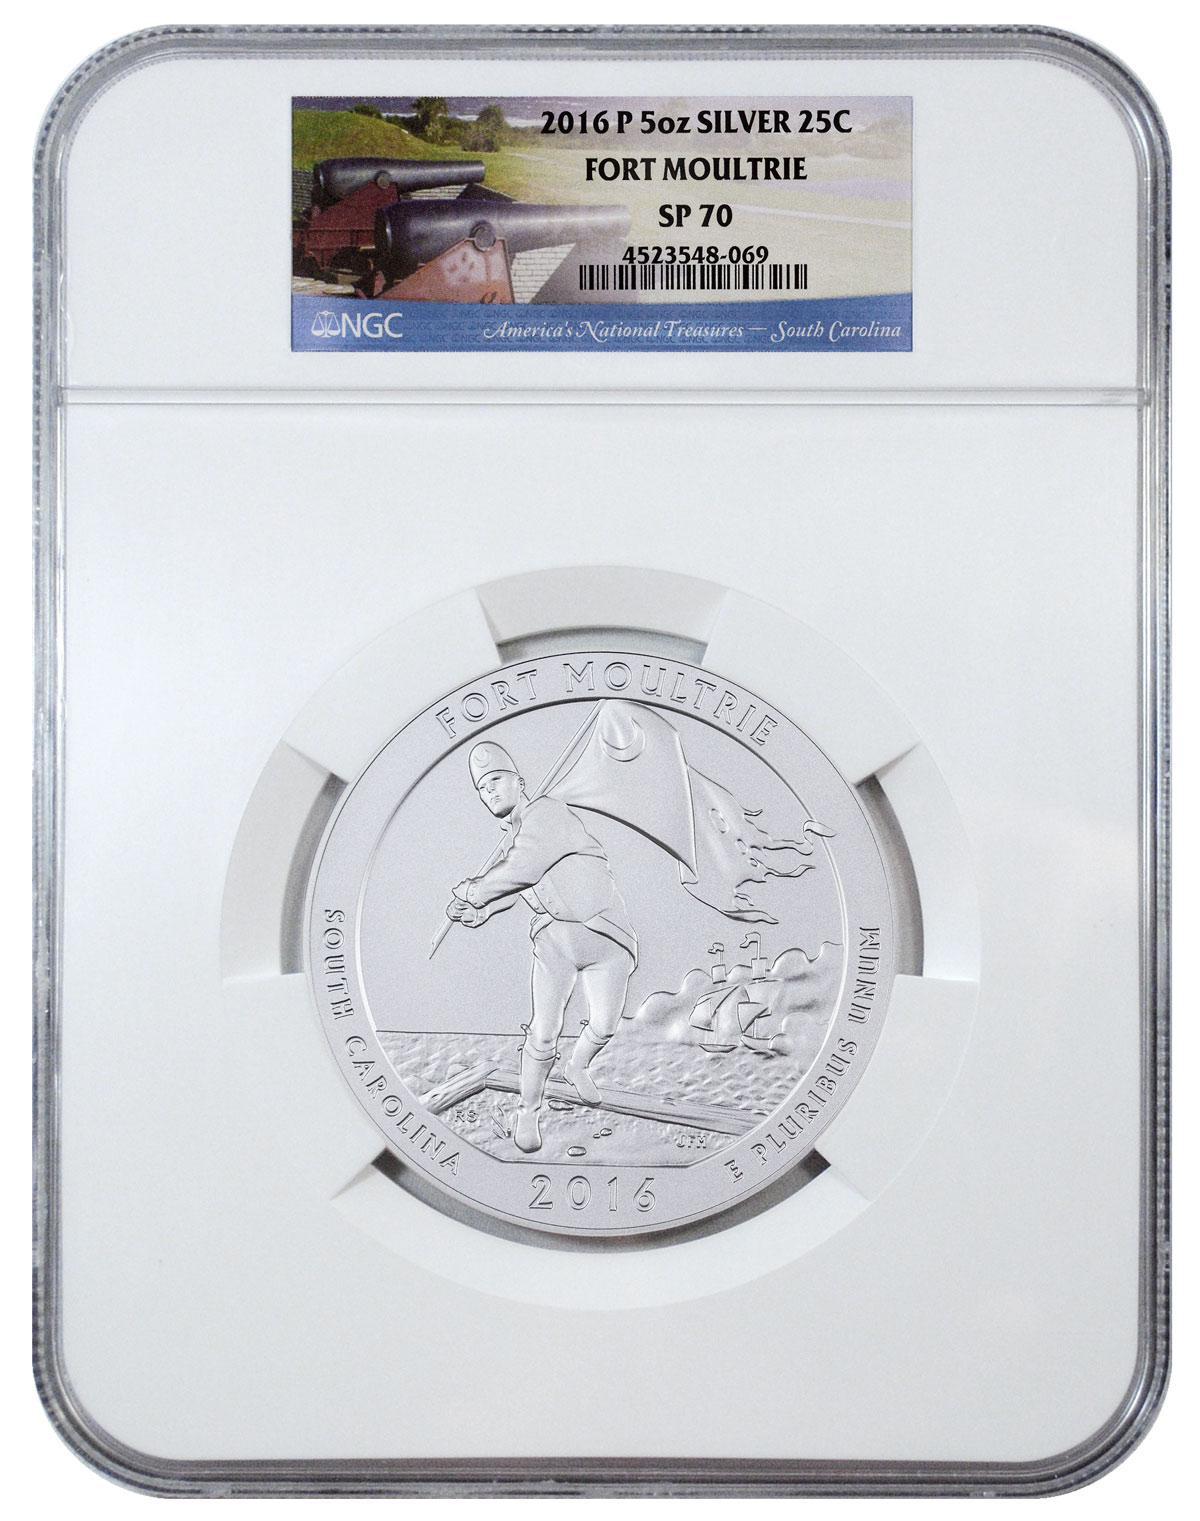 2016-P Fort Moultrie 5 oz. Silver America the Beautiful Specimen Coin NGC SP70 (America's Natural Treasures Label)